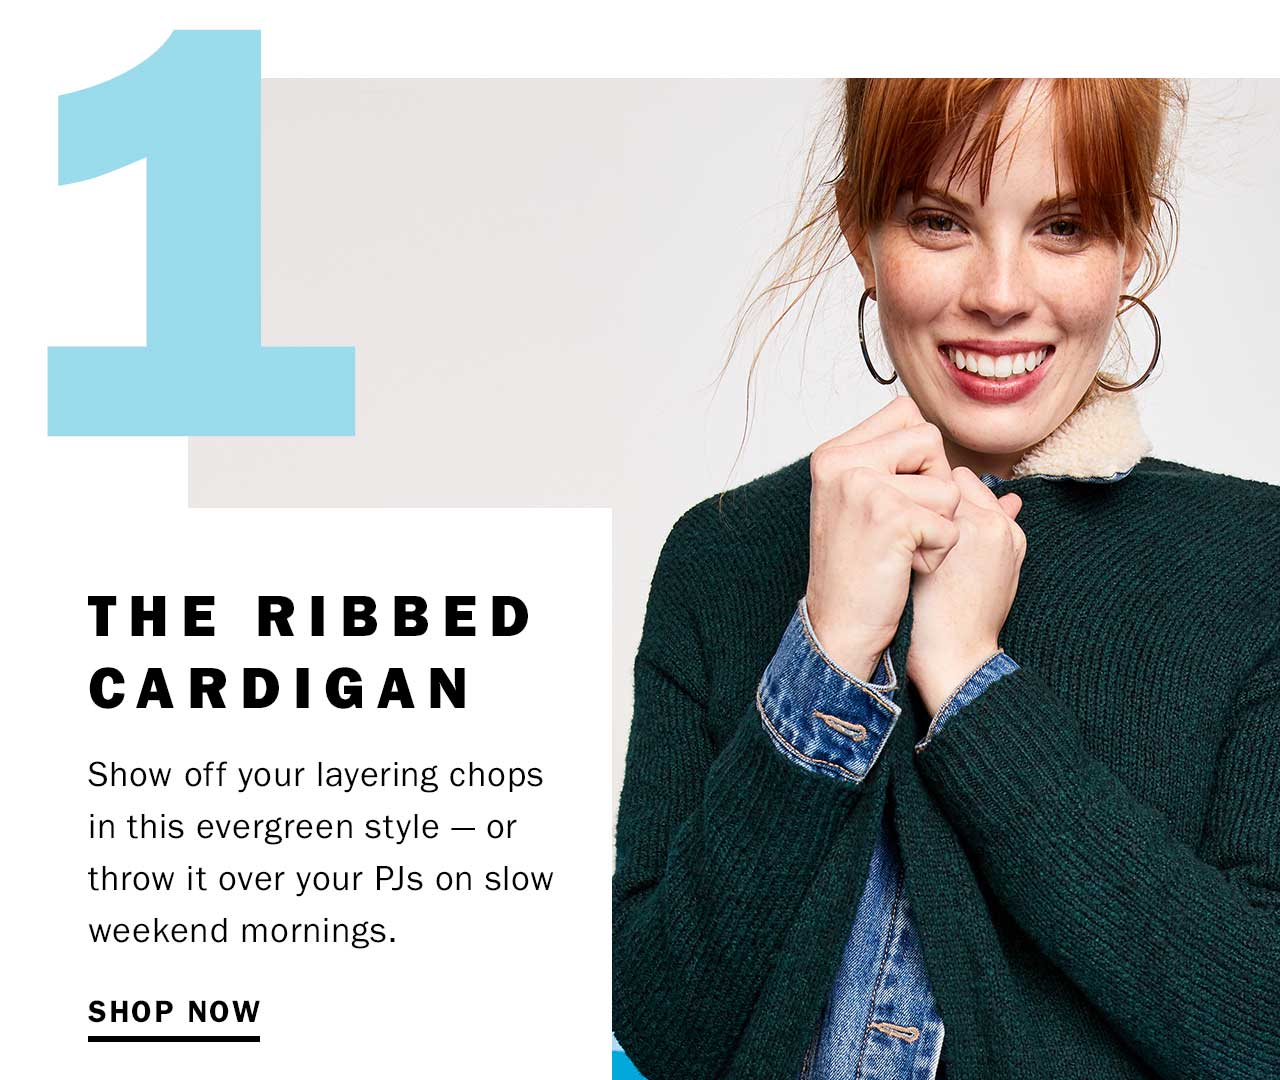 The ribbed cardigan